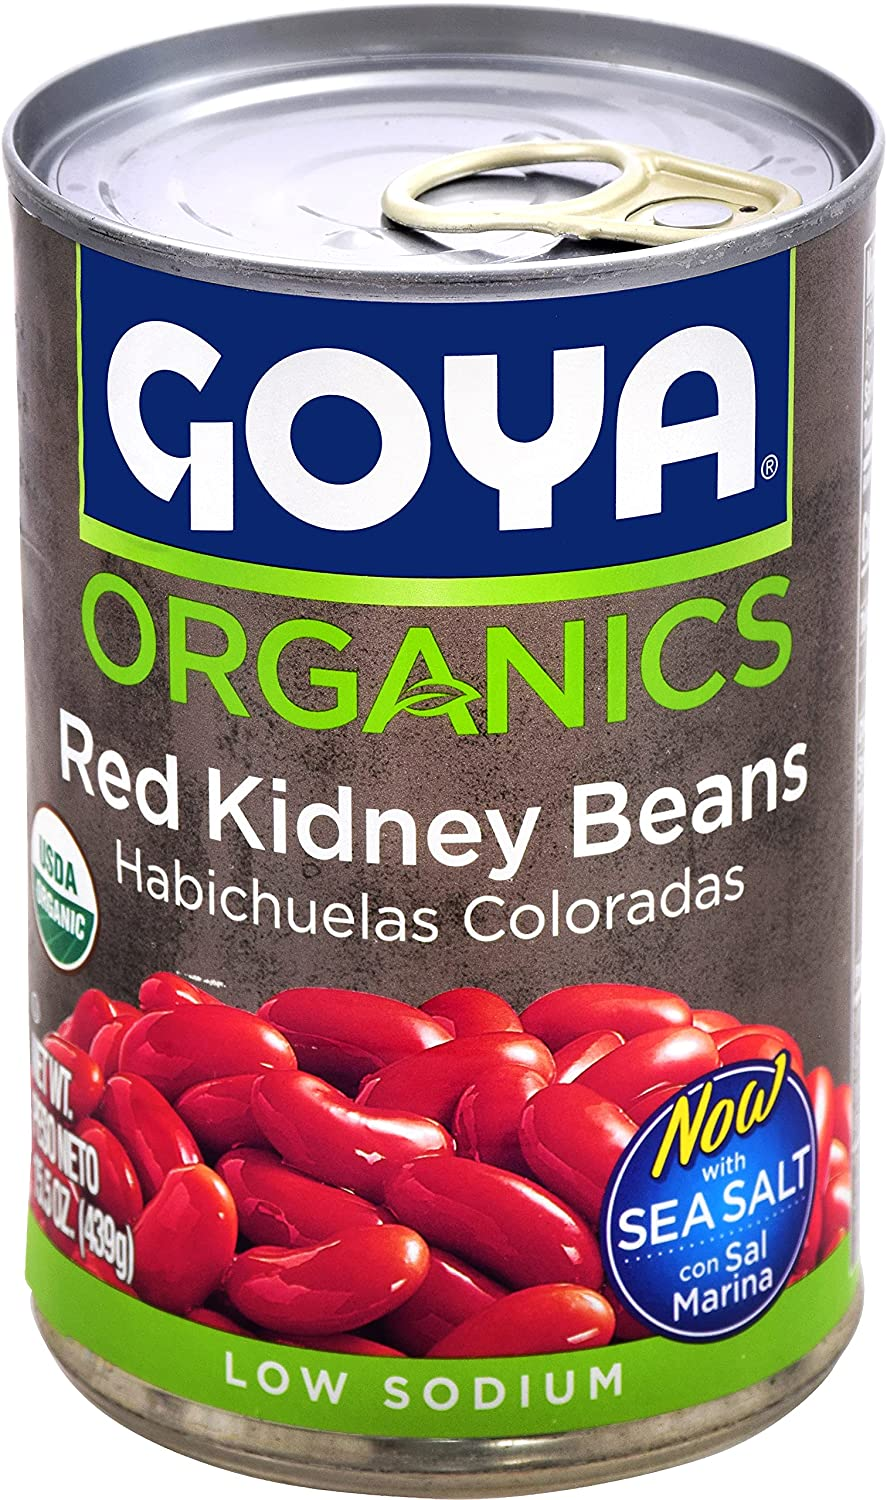 Goya Gorgeous Foods Organic Max 46% OFF Red Kidney Beans of 24 Ounce 15.5 Pack